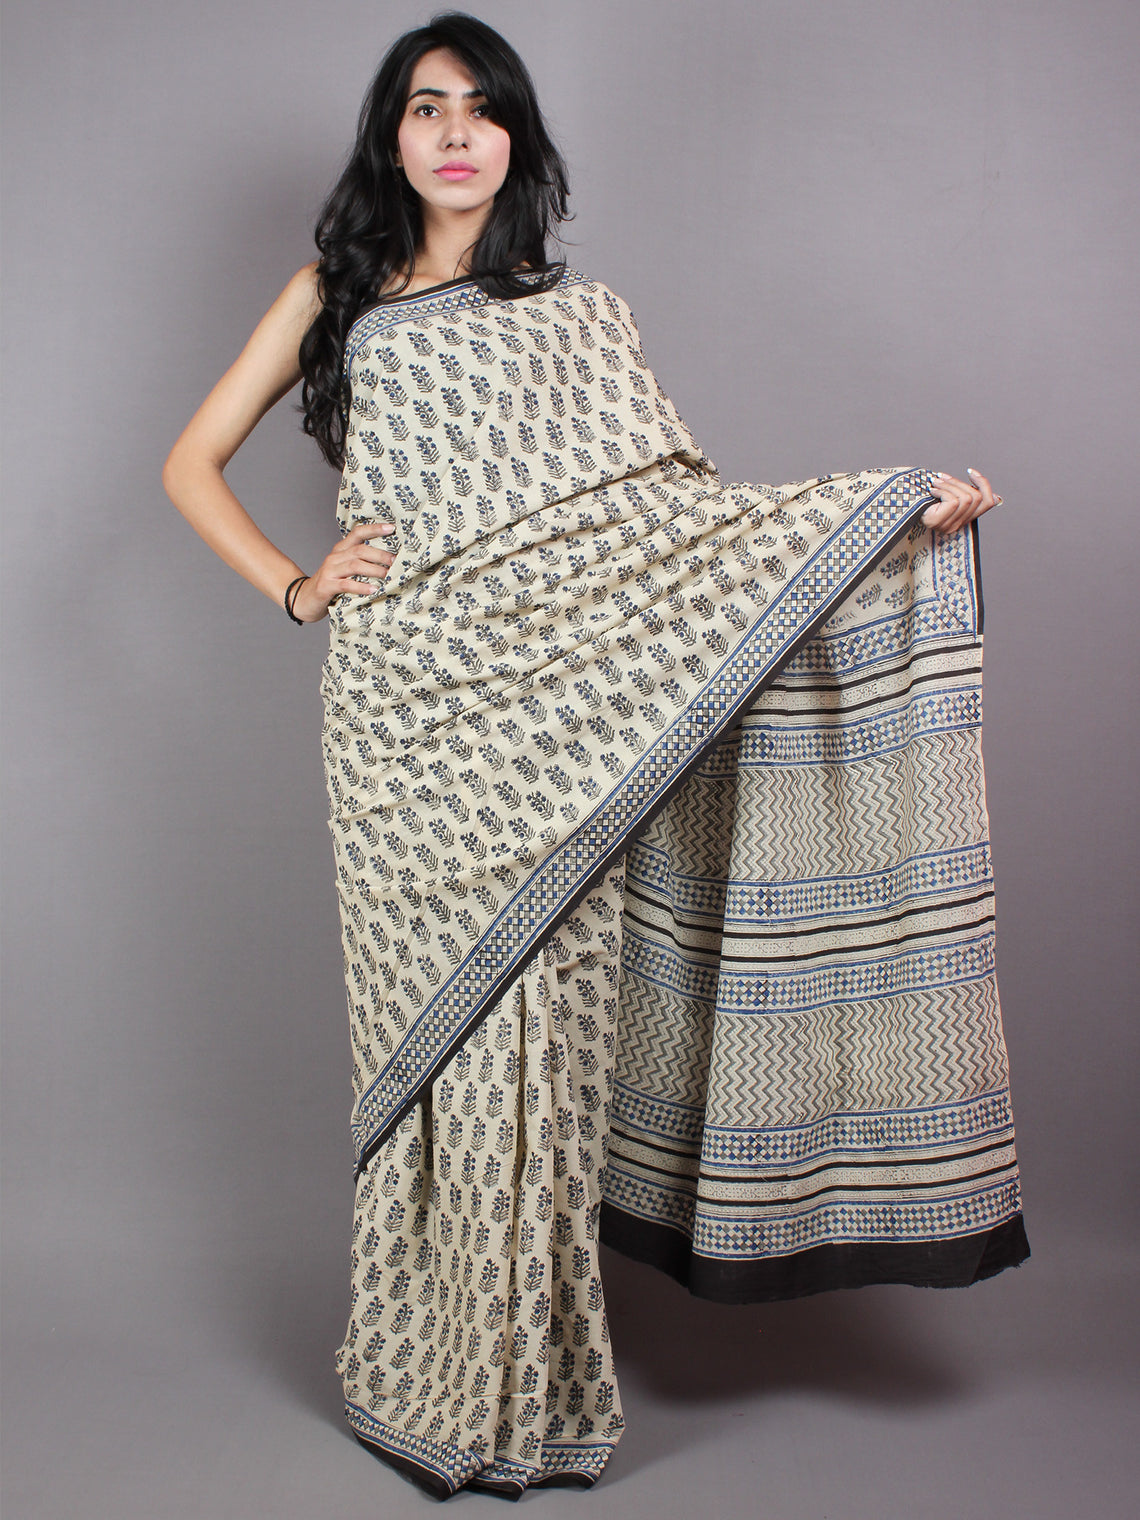 Ivory Blue Cotton Hand Block Printed Saree - S03170407